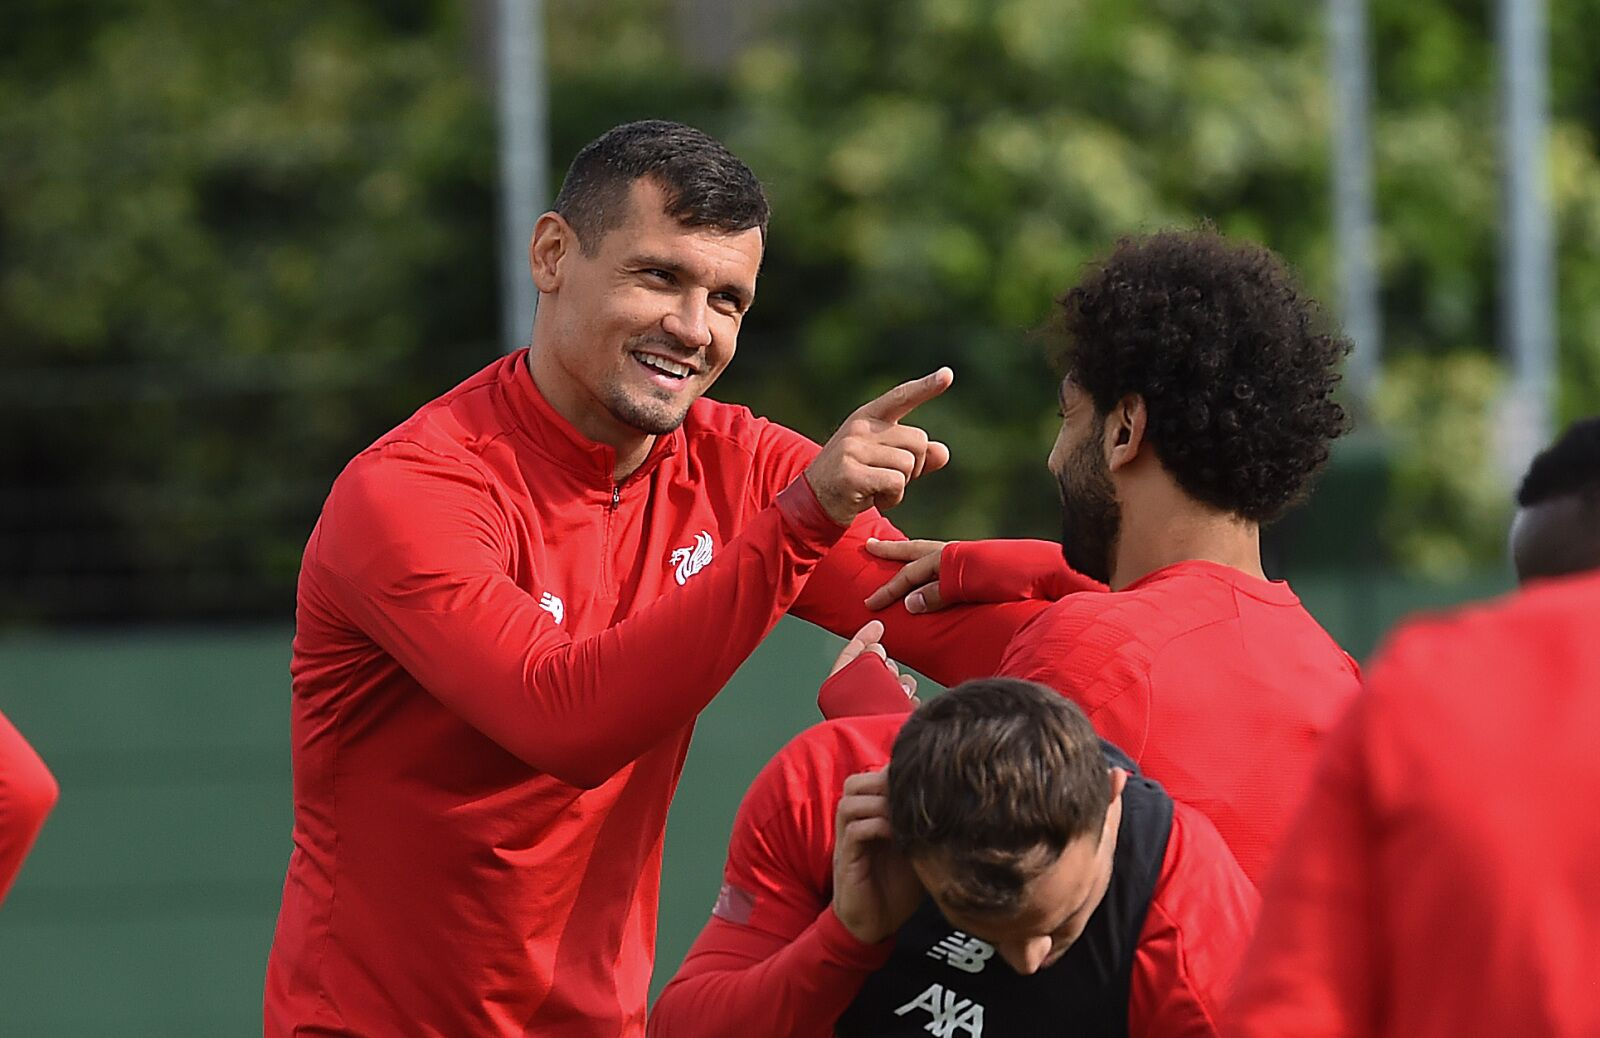 Dejan Lovren staying at Liverpool, as Roma deal falls apart